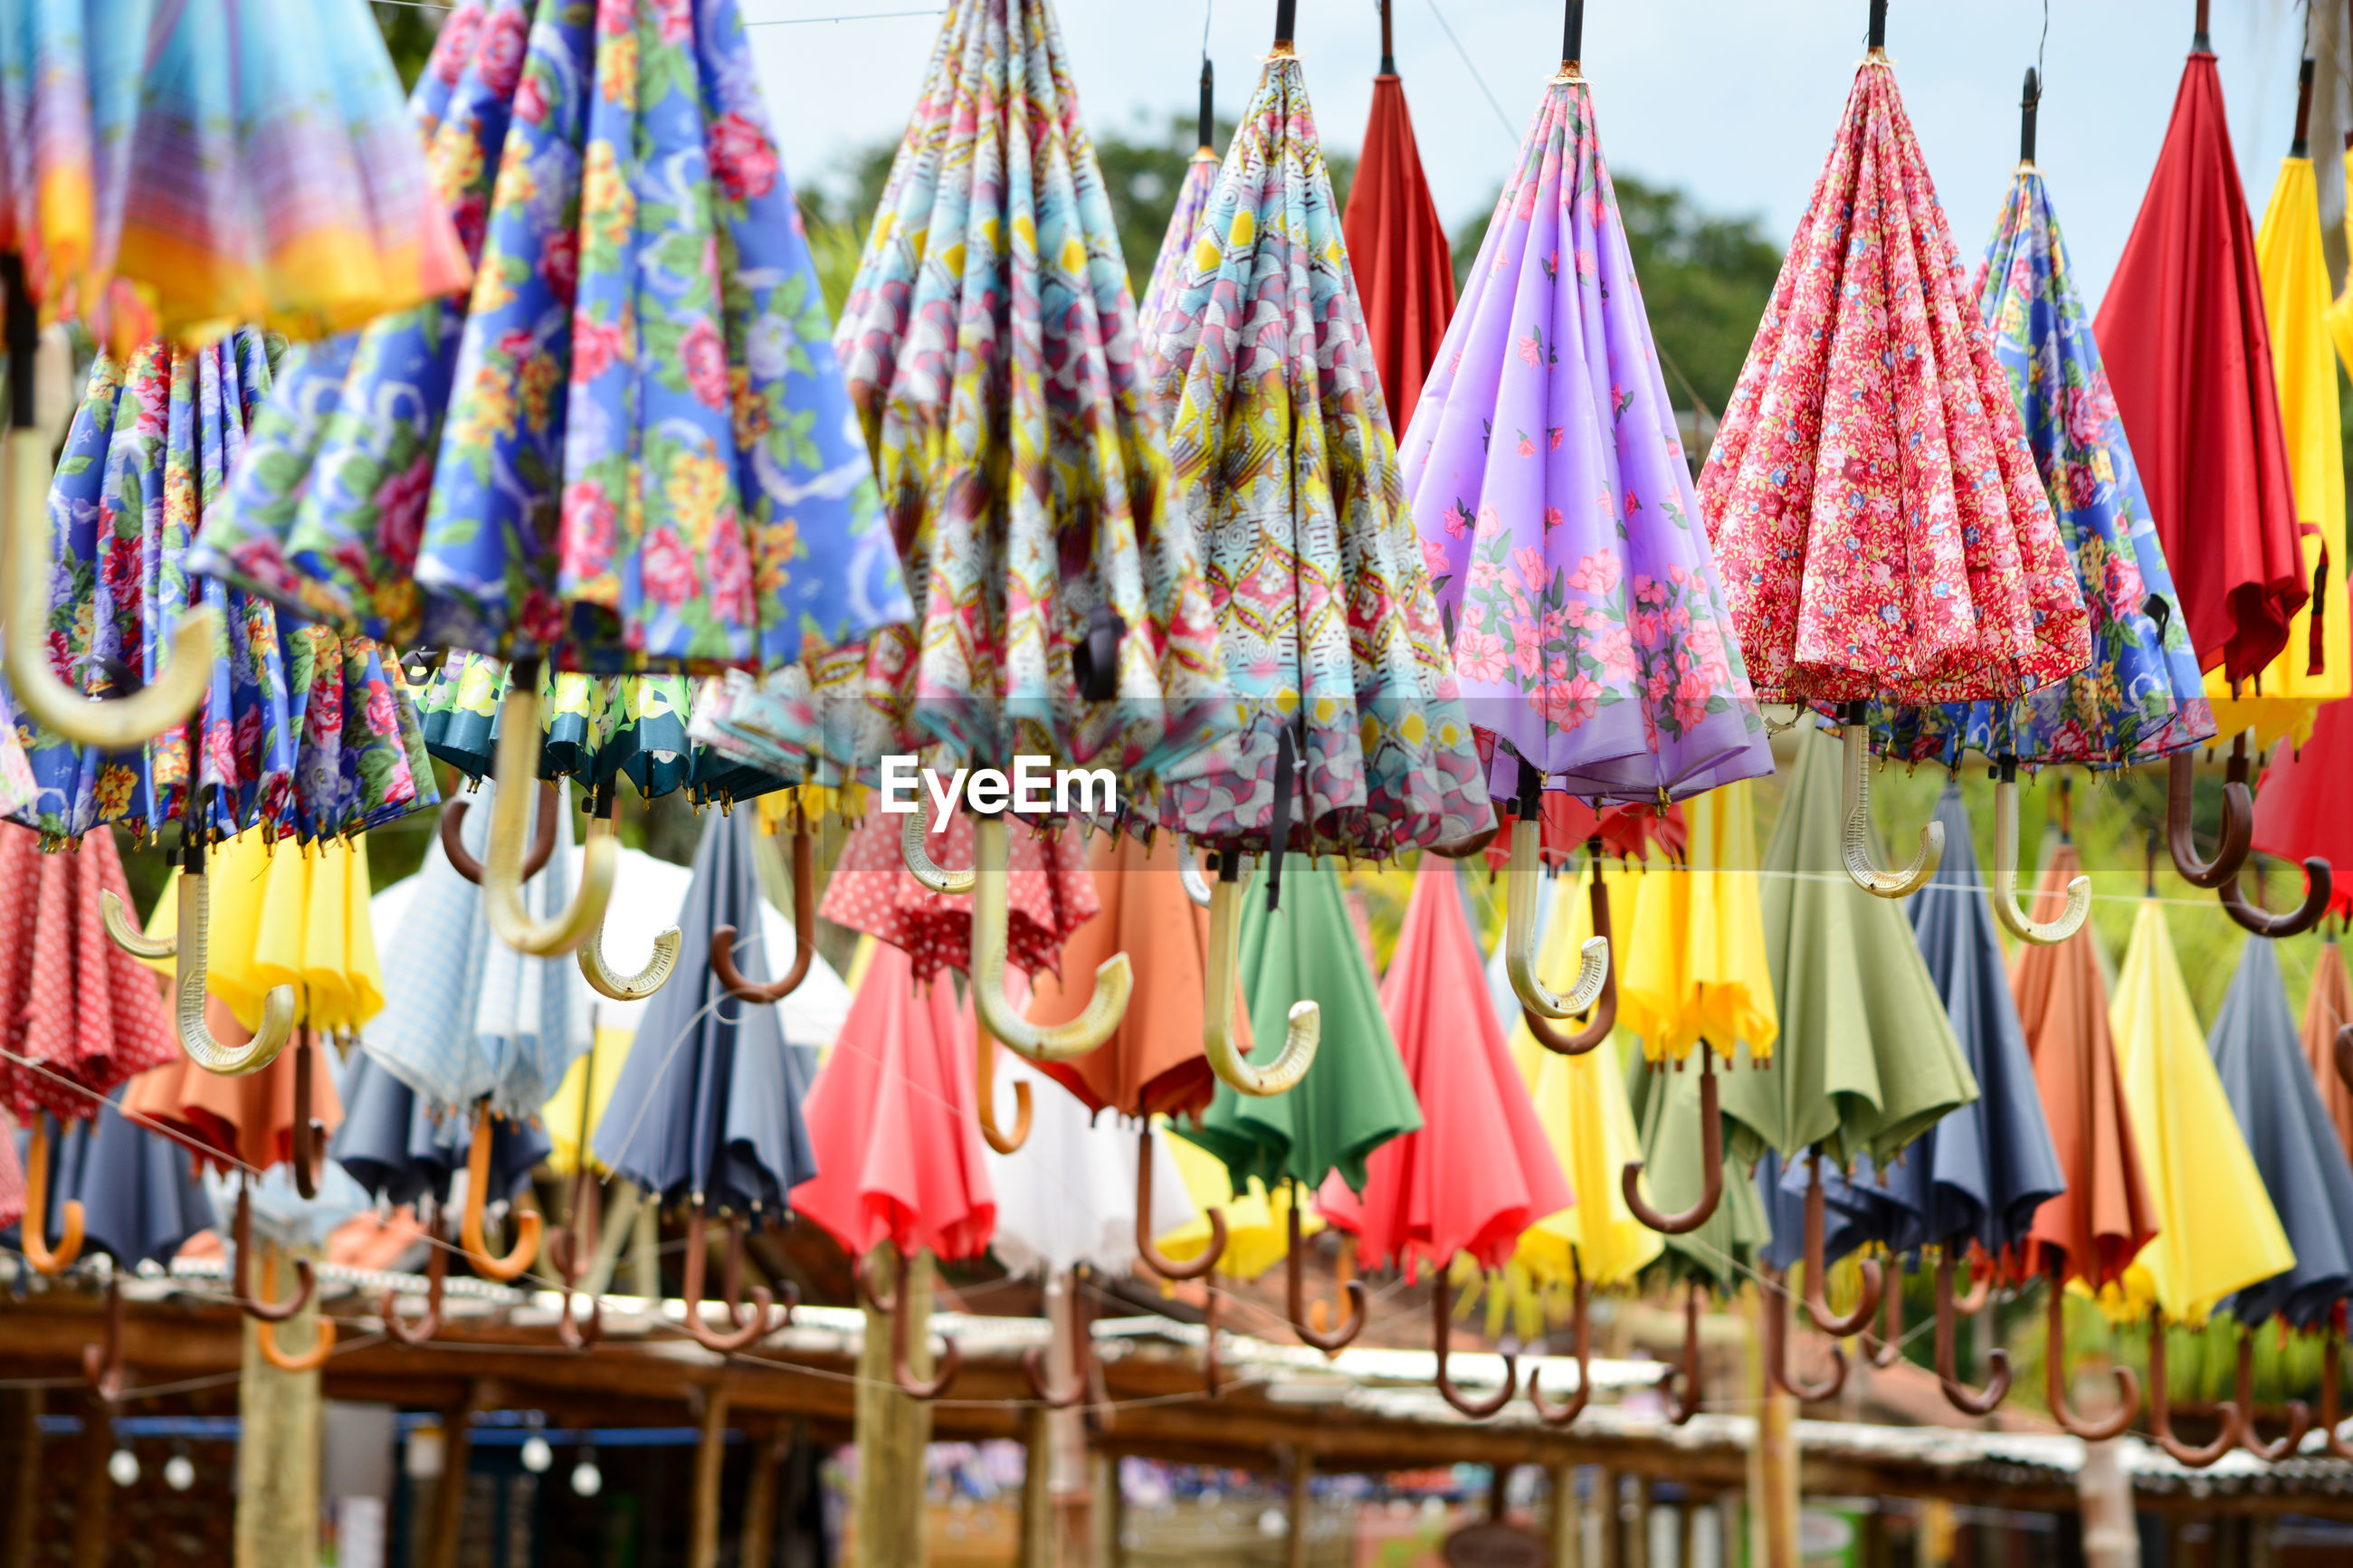 Multi colored umbrellas hanging at market stall